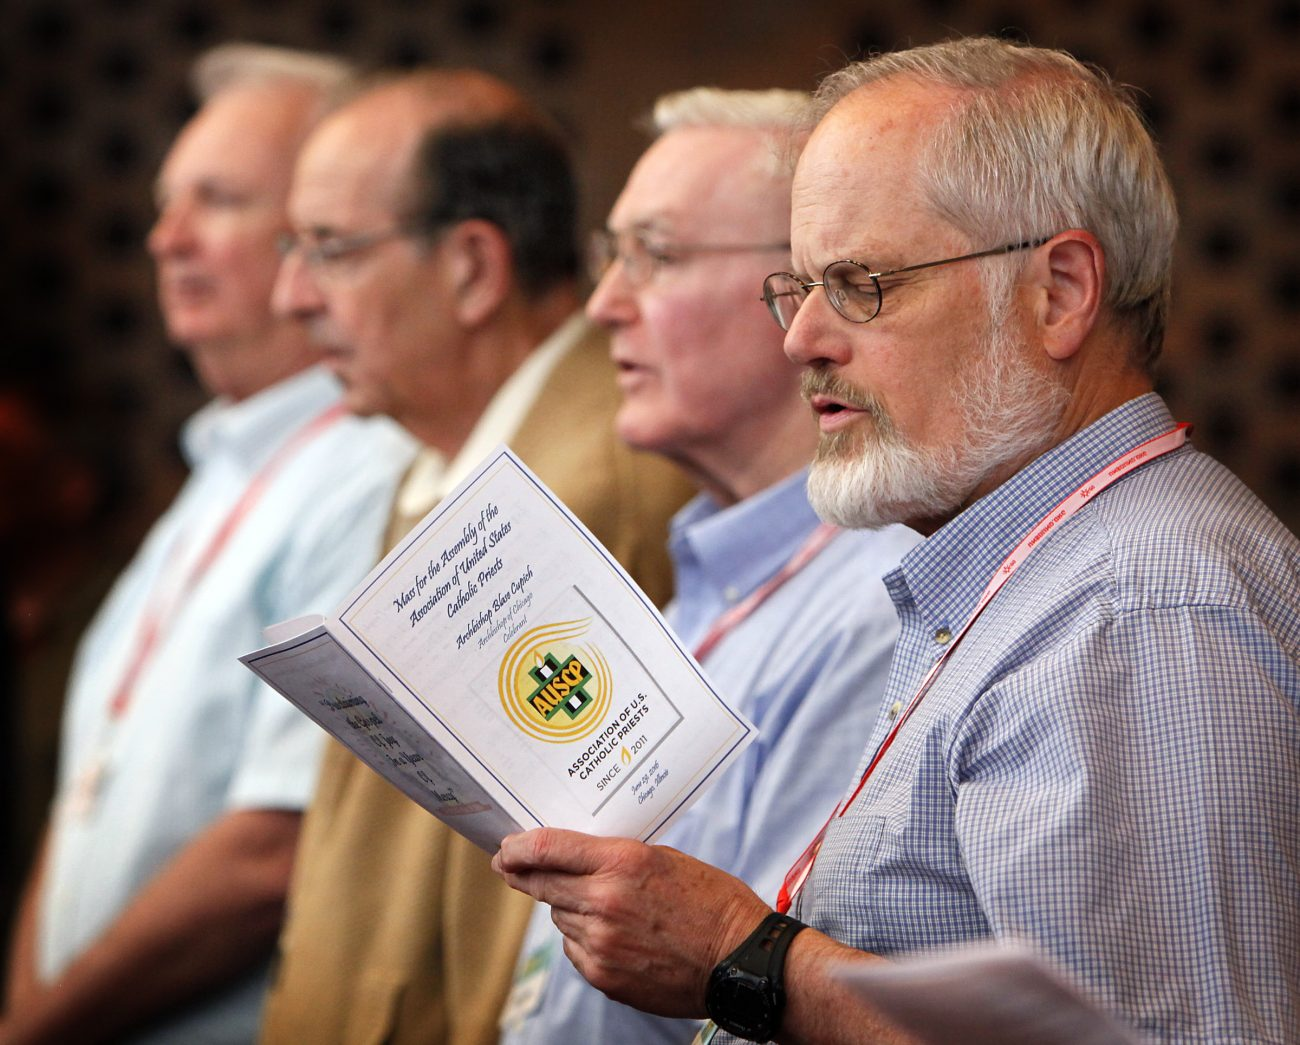 Priests sing during Mass June 30 at the Association of U.S. Priests gathering in Chicago. About 200 members from around the country attend the annual event. (CNS photo/Karen Callaway, Catholic New World)